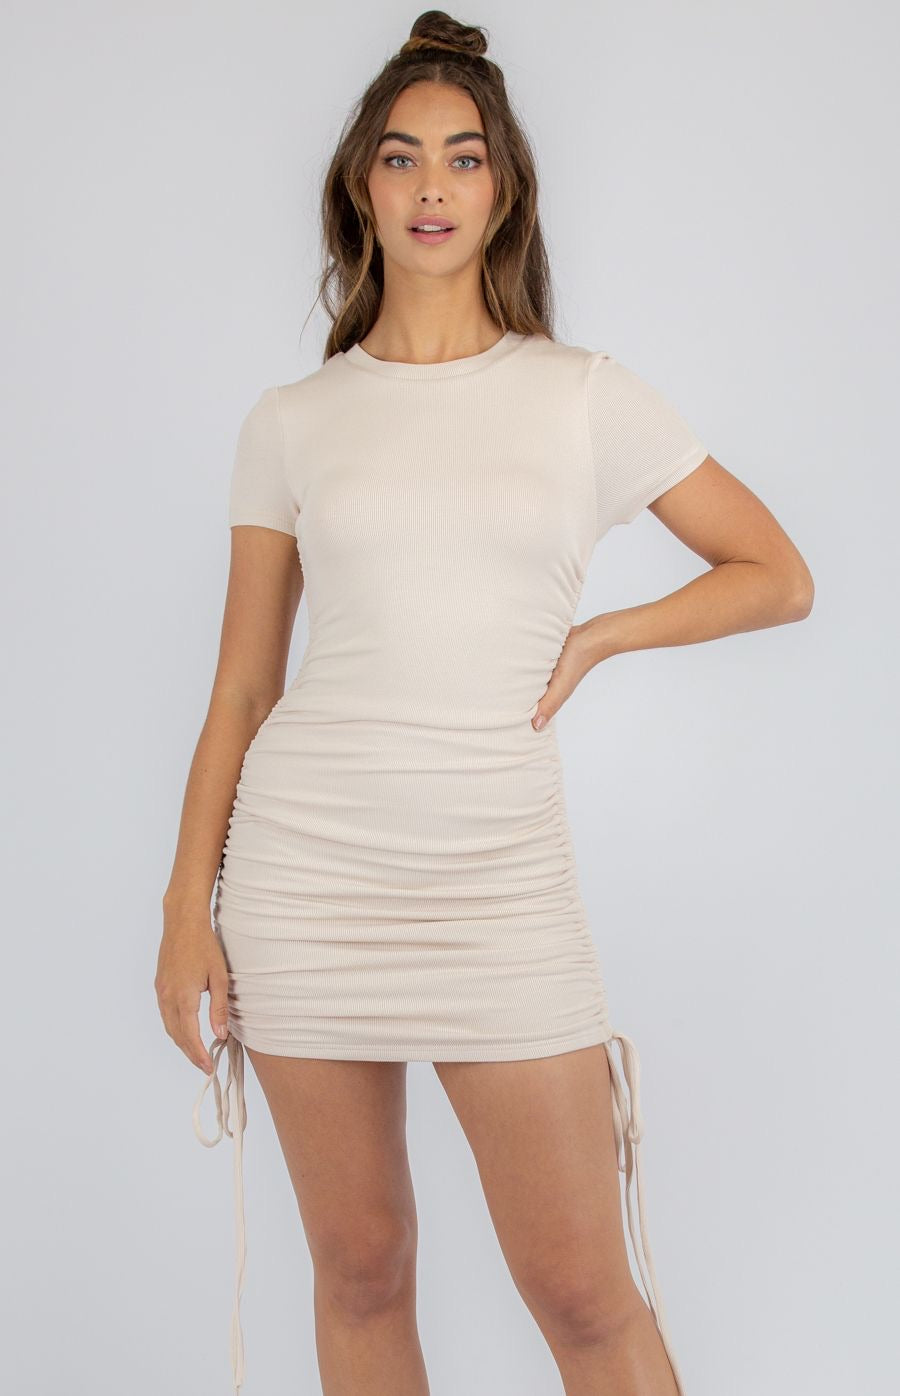 Nude Jersey Dress With Double Drawstring Details